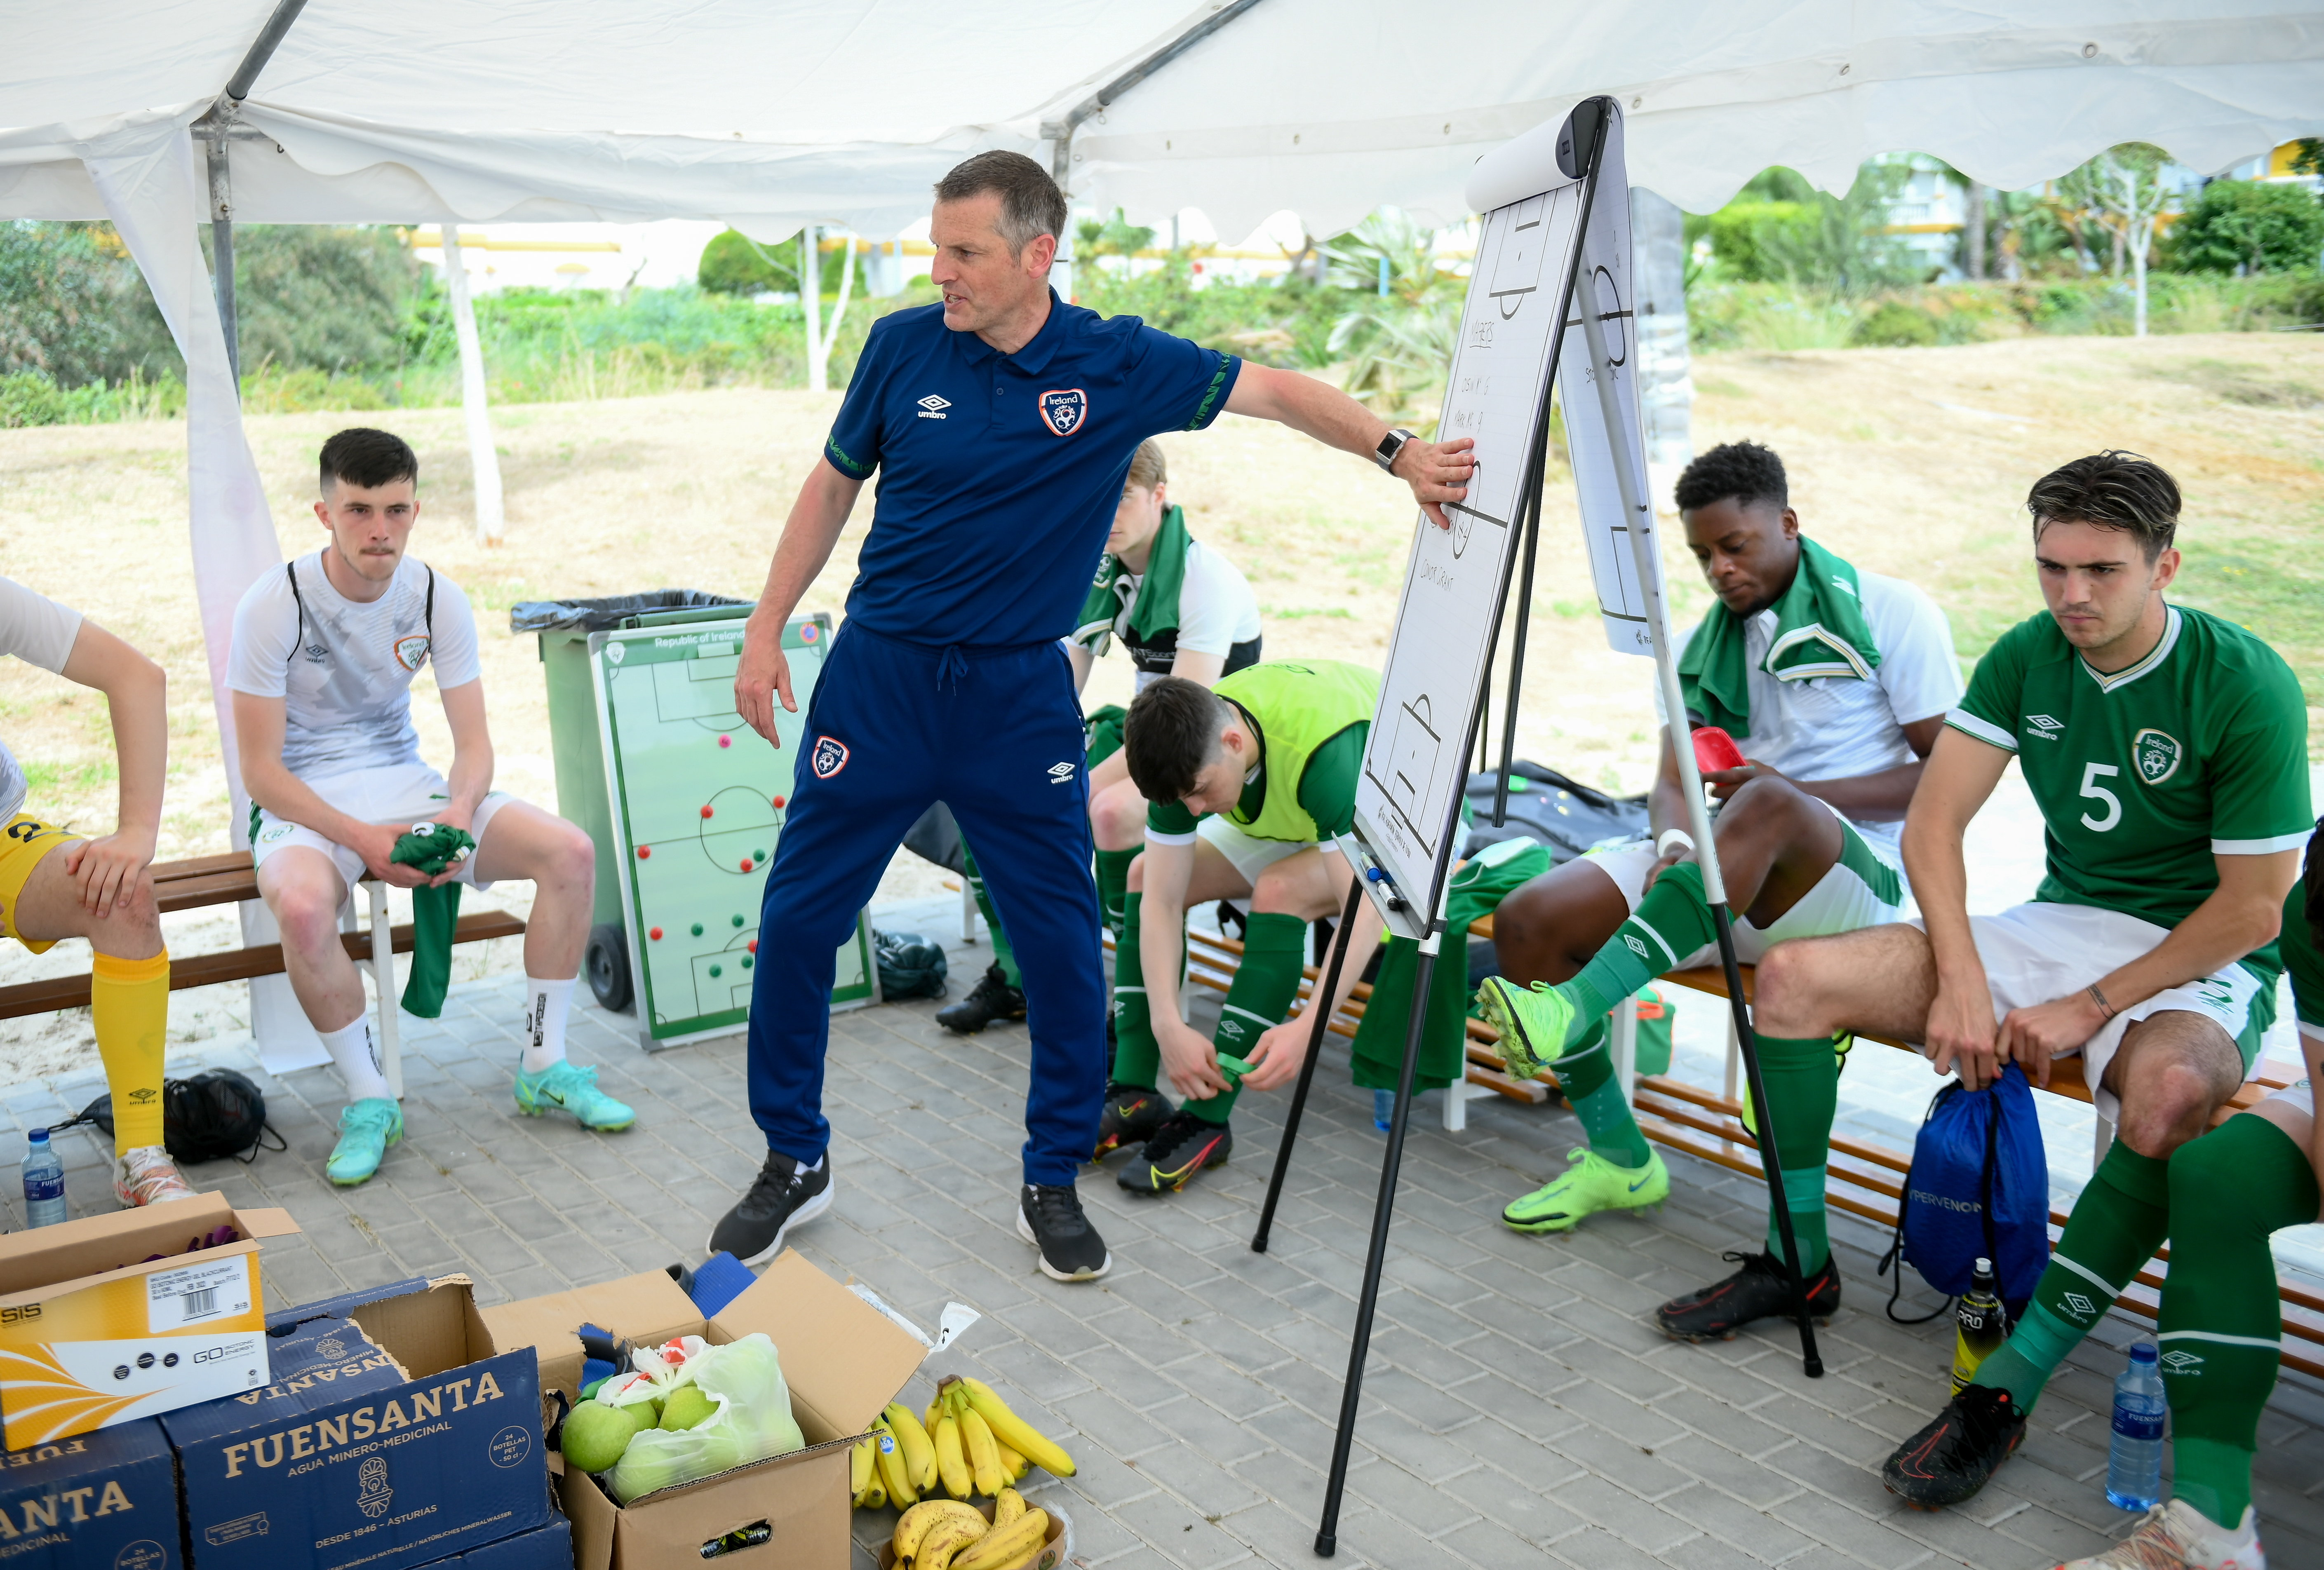 Manager outlines tactics to his players before an international match